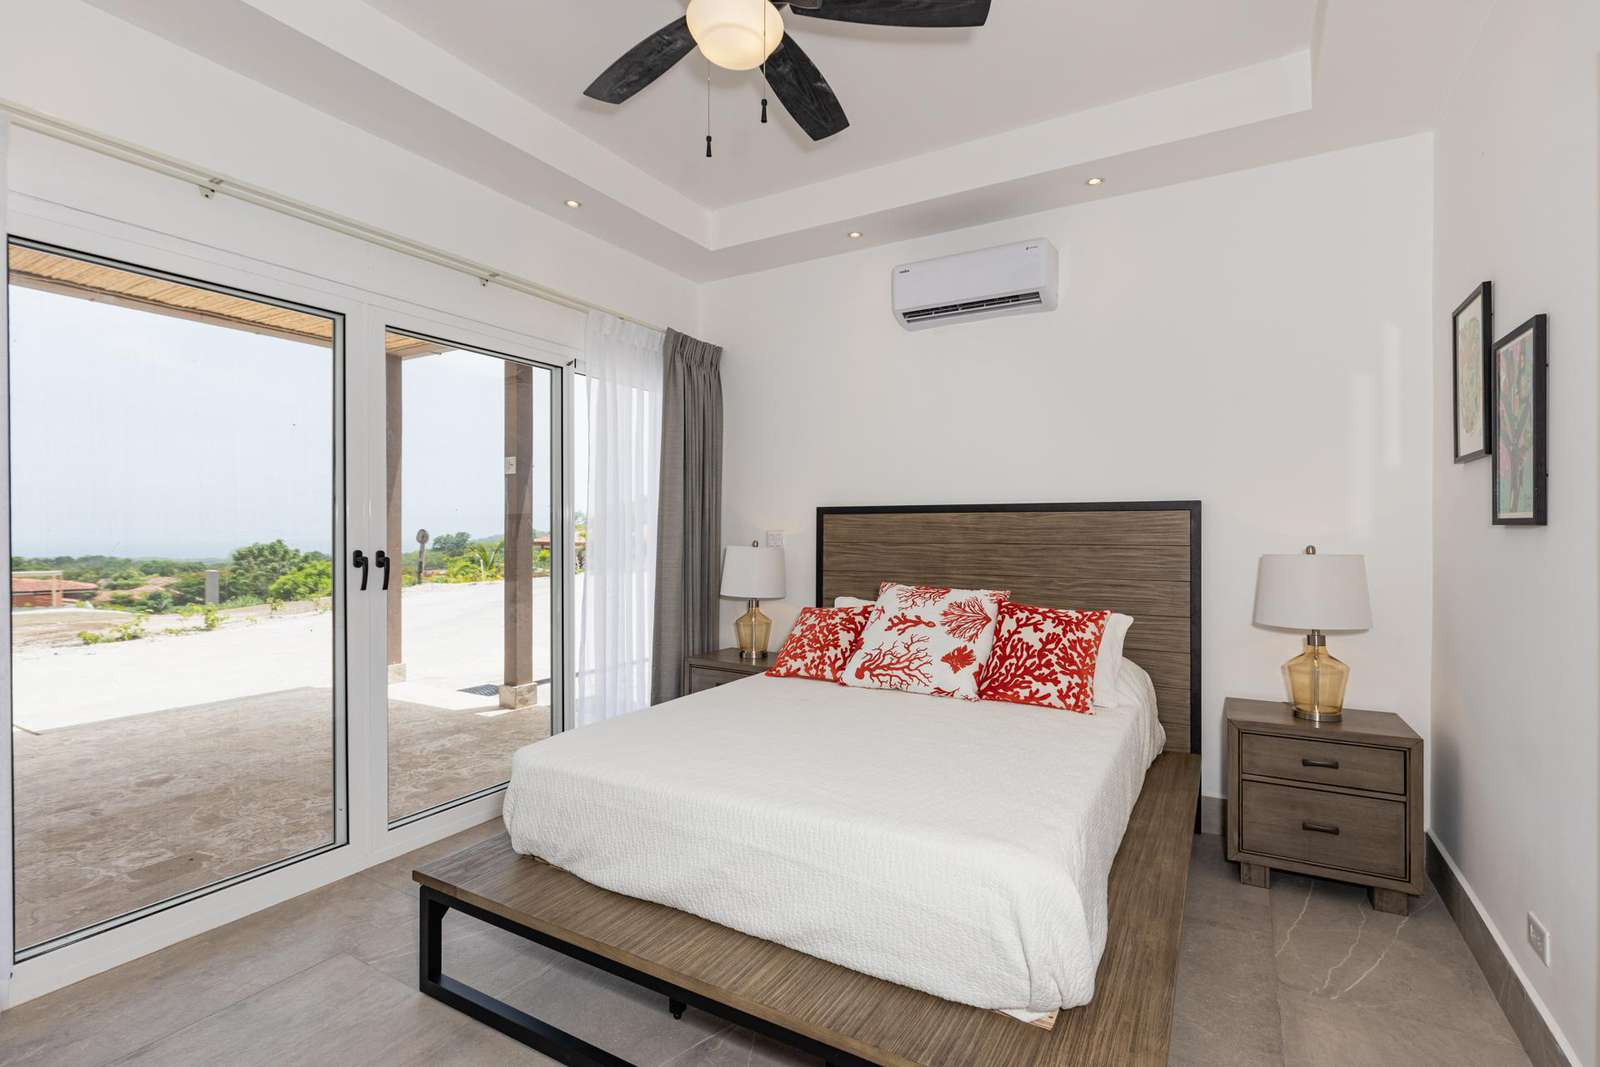 Master bedroom, Queen Bed, Full bathroom, access to pool and terrace area